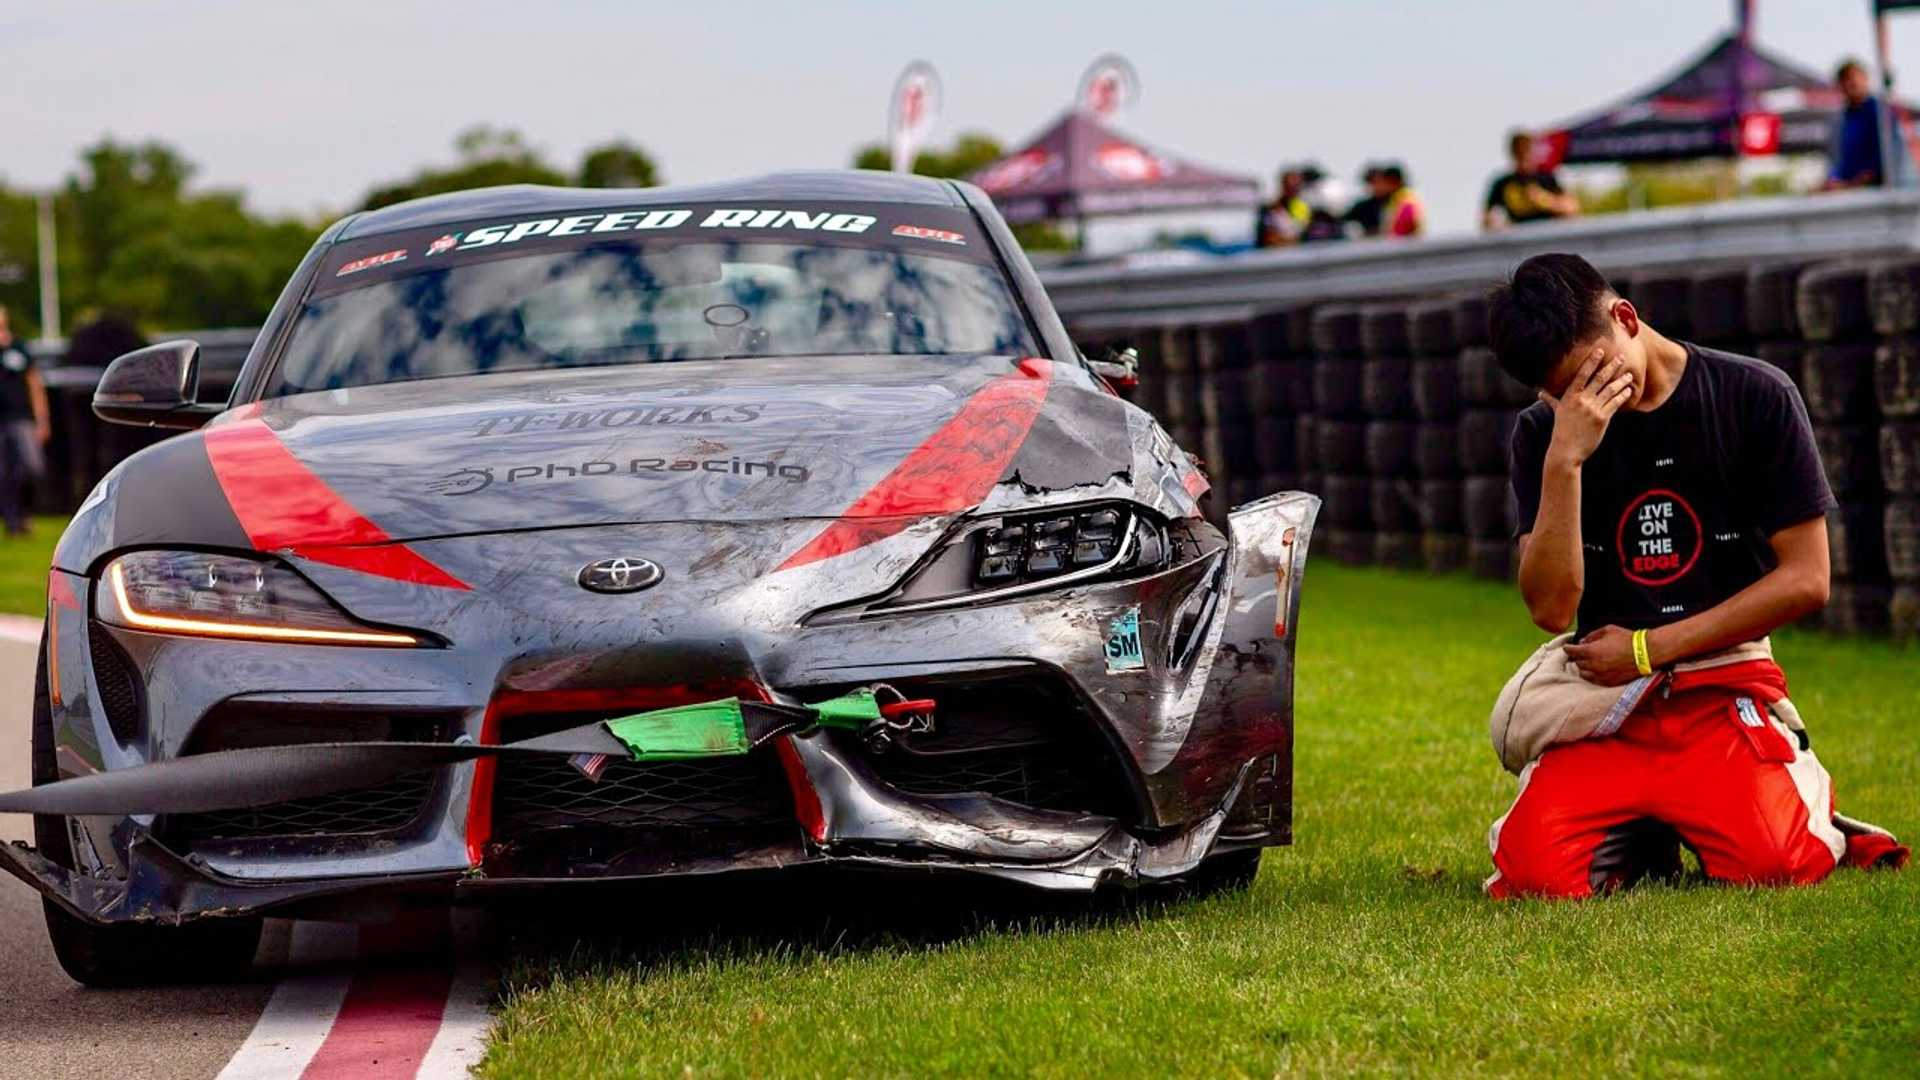 2020 Toyota Supra Crash Filmed, Aftermath Is Heartbreaking